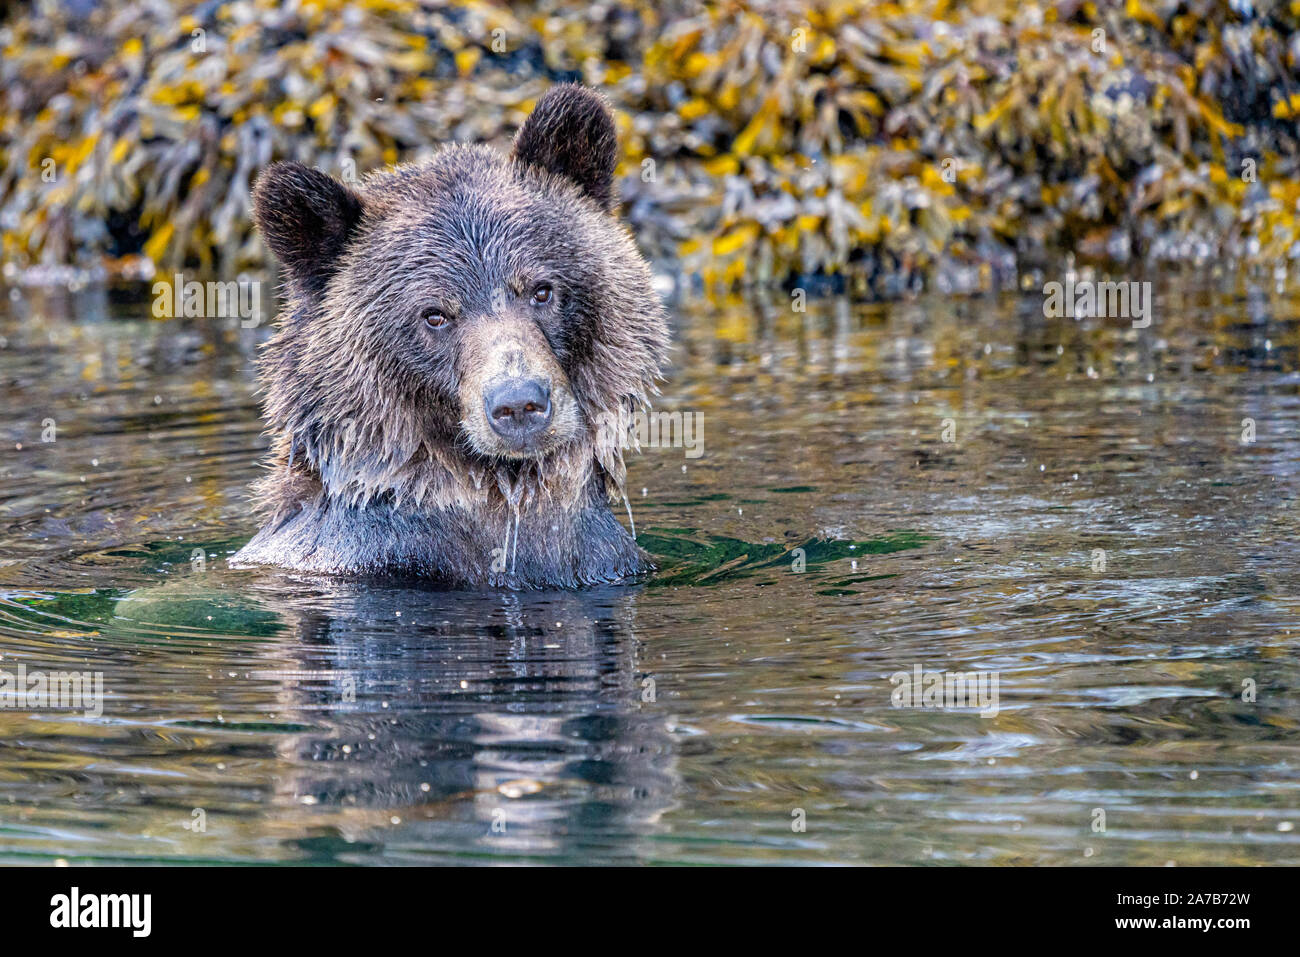 Grizzly bear swimming along the Knight Inlet shoreline during low tide, First Nations Territory, British Columbia, Canada. Stock Photo